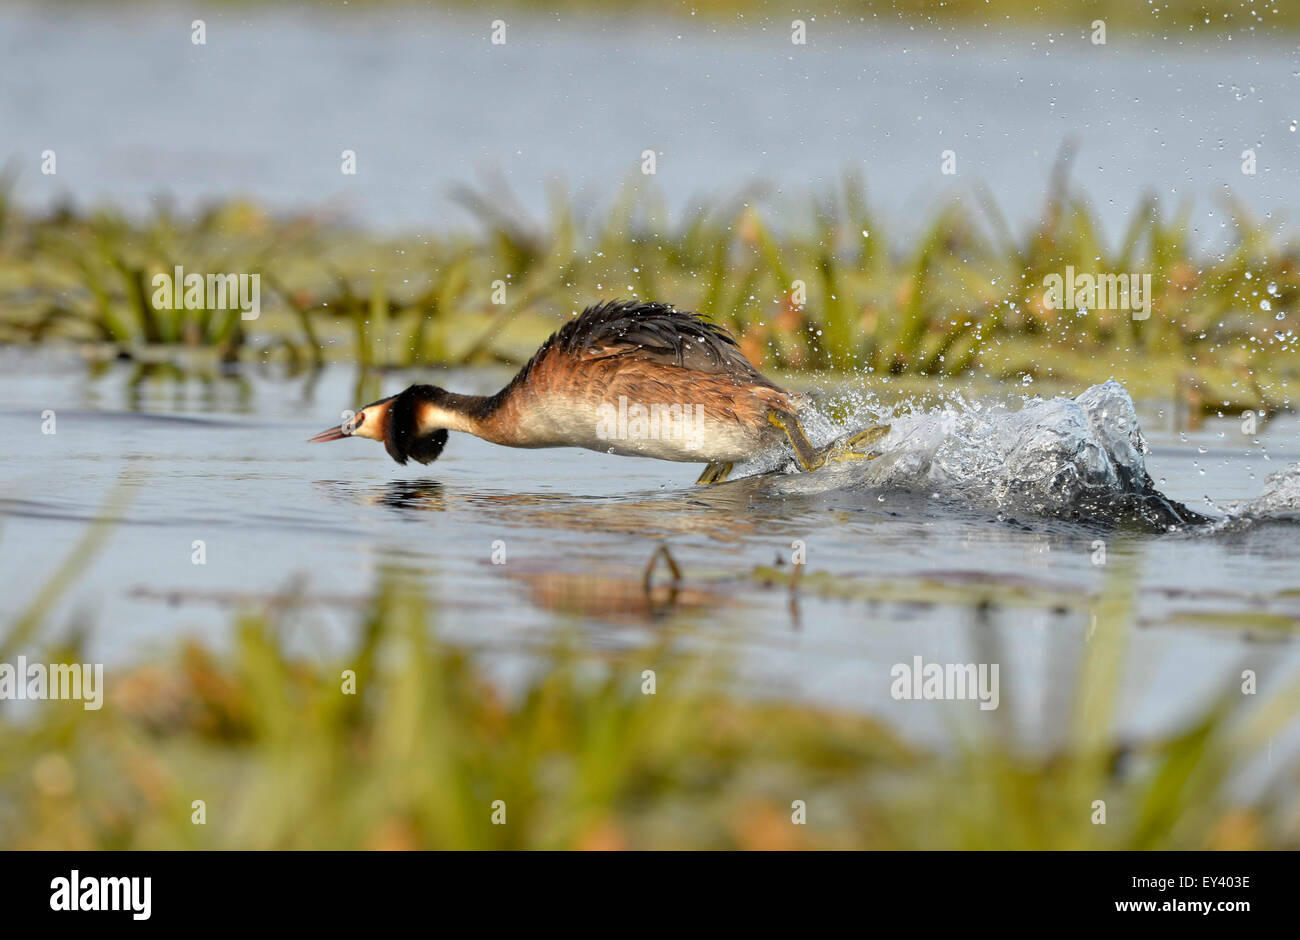 Great Crested Grebe (Podiceps cristatus) adult running across water surface, in aggressive posture, Danube delta, - Stock Image